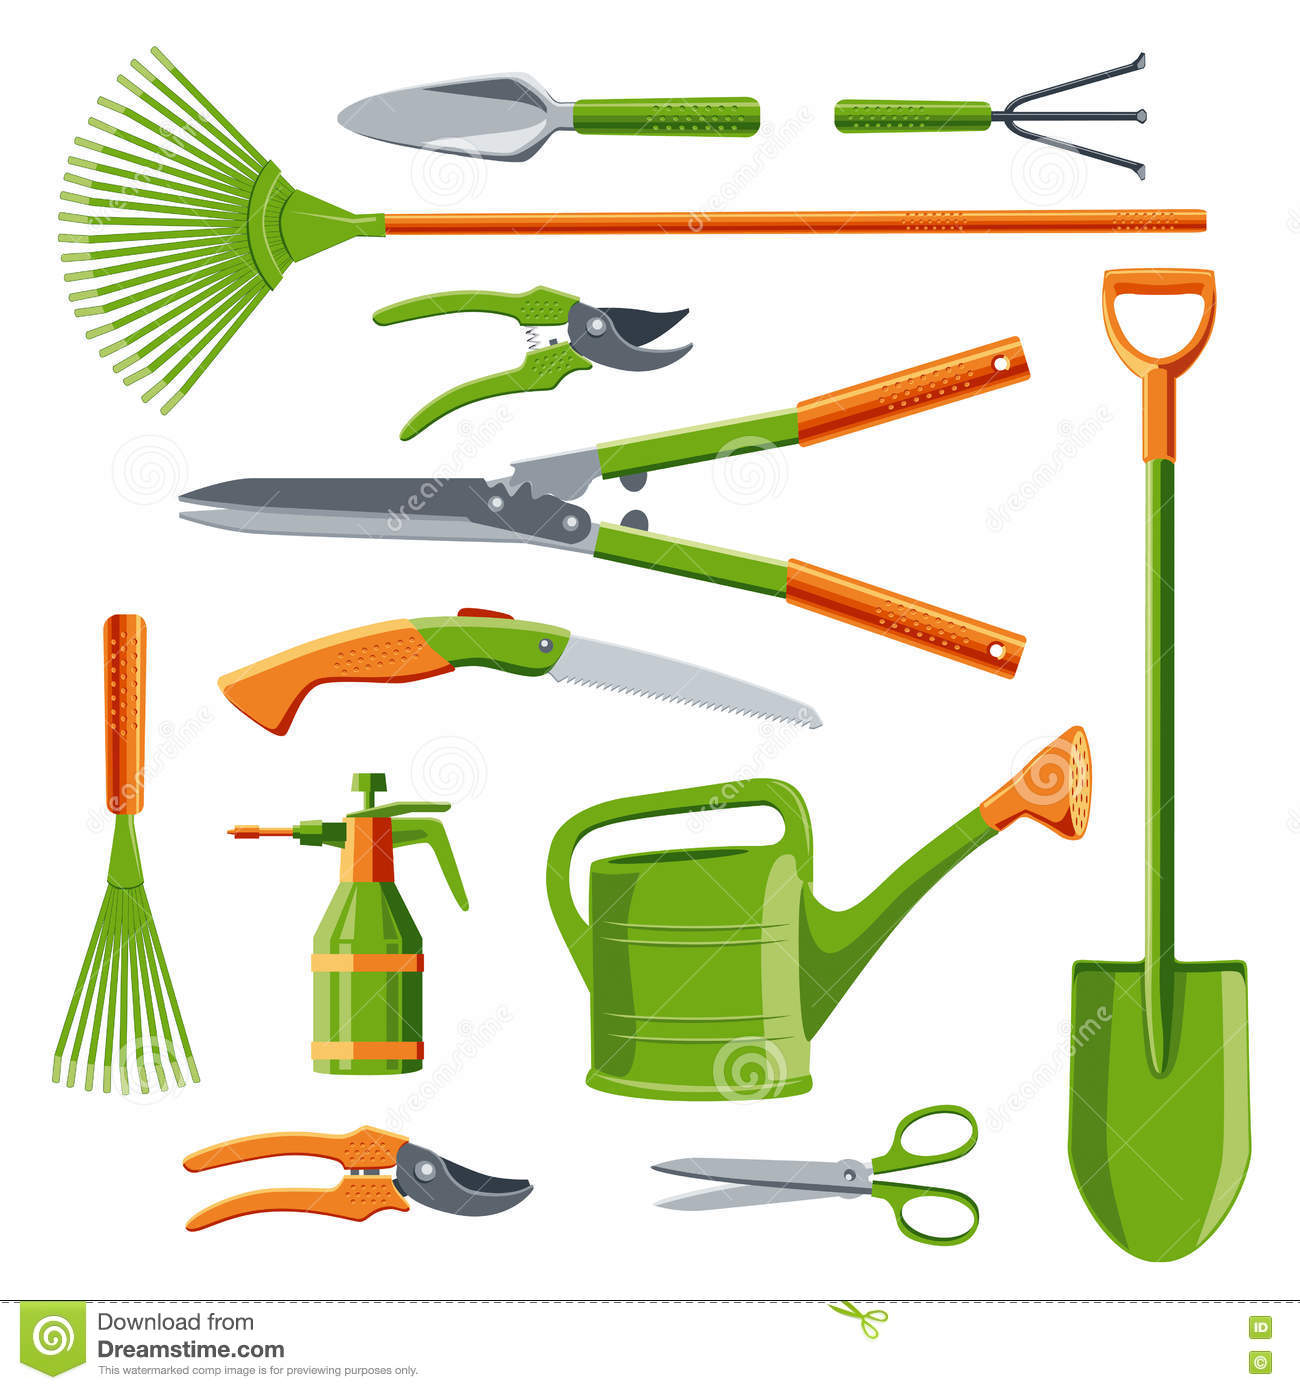 Essential gardening tools vector stock vector image for Common garden hand tools